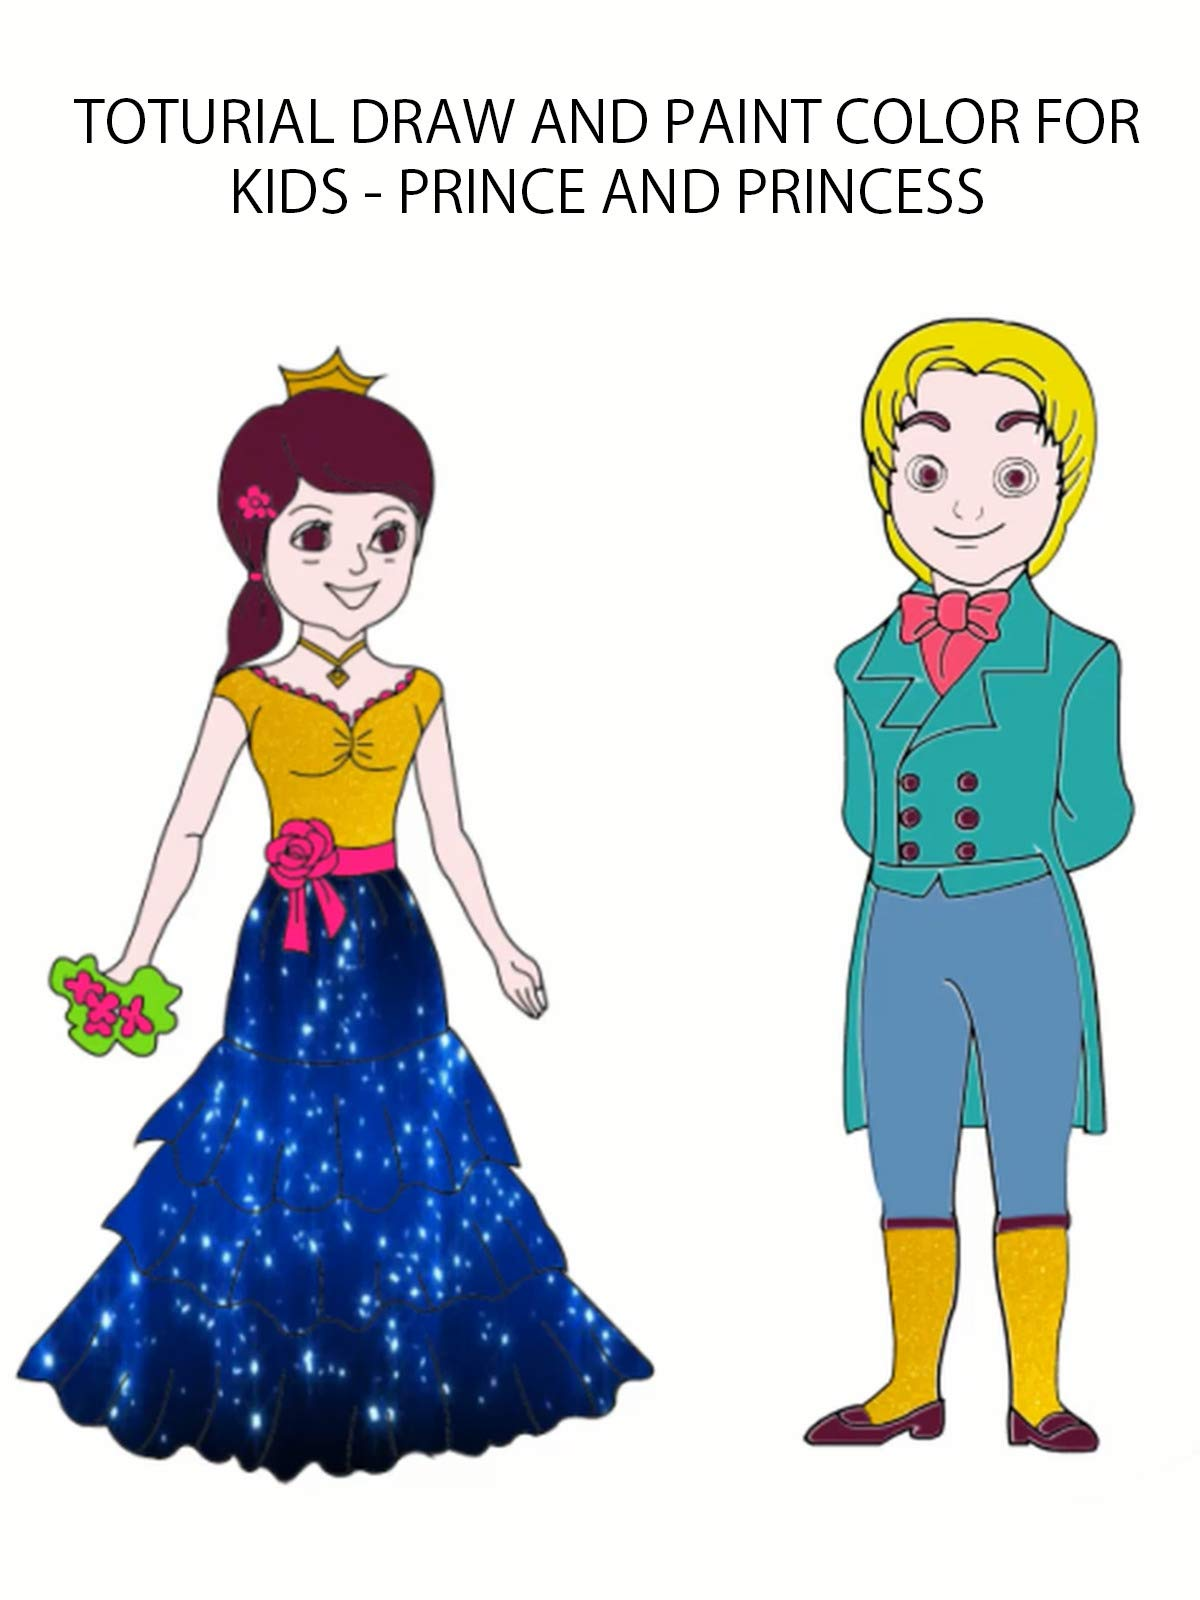 toturial draw and paint color for kids - prince and princess on Amazon Prime Video UK